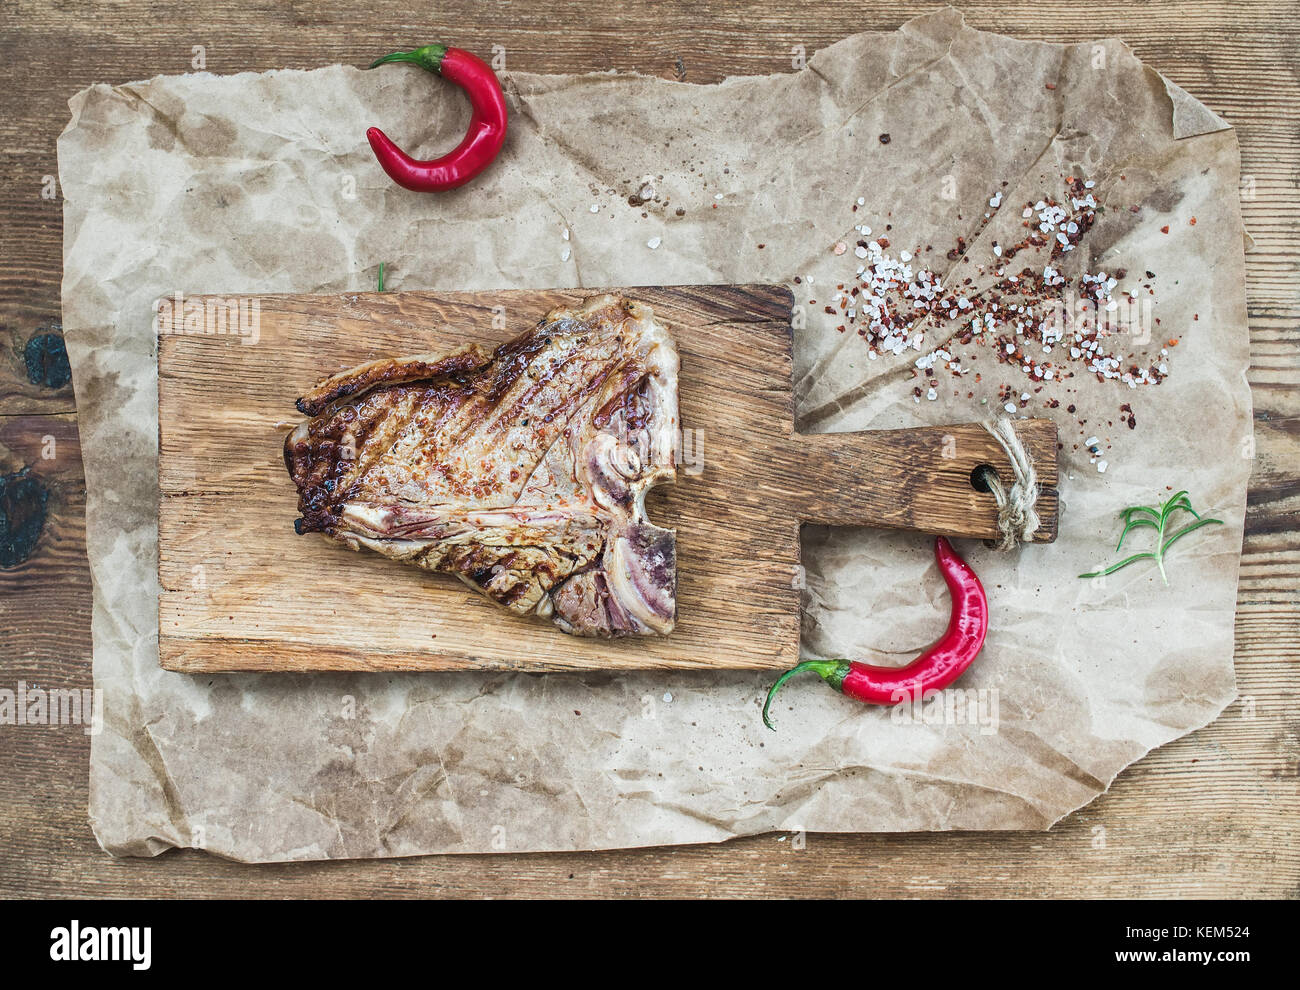 Cooked meat t-bone steak on serving board with red chili peppers Stock Photo